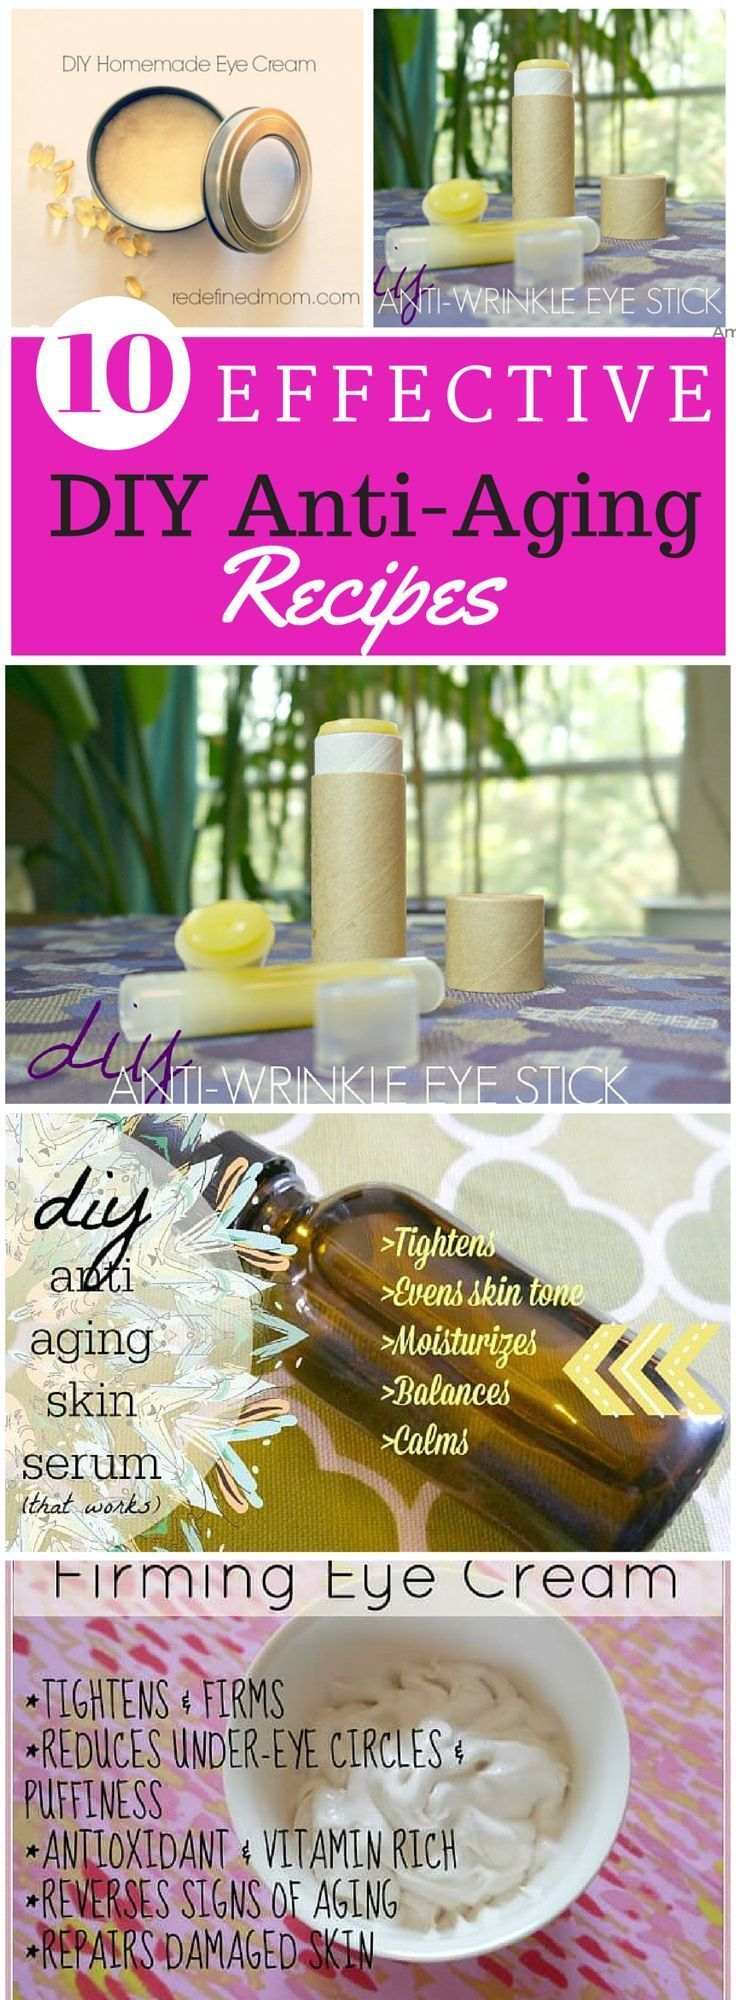 #antiwrinkle #antiaging #effective #homemade #recipes